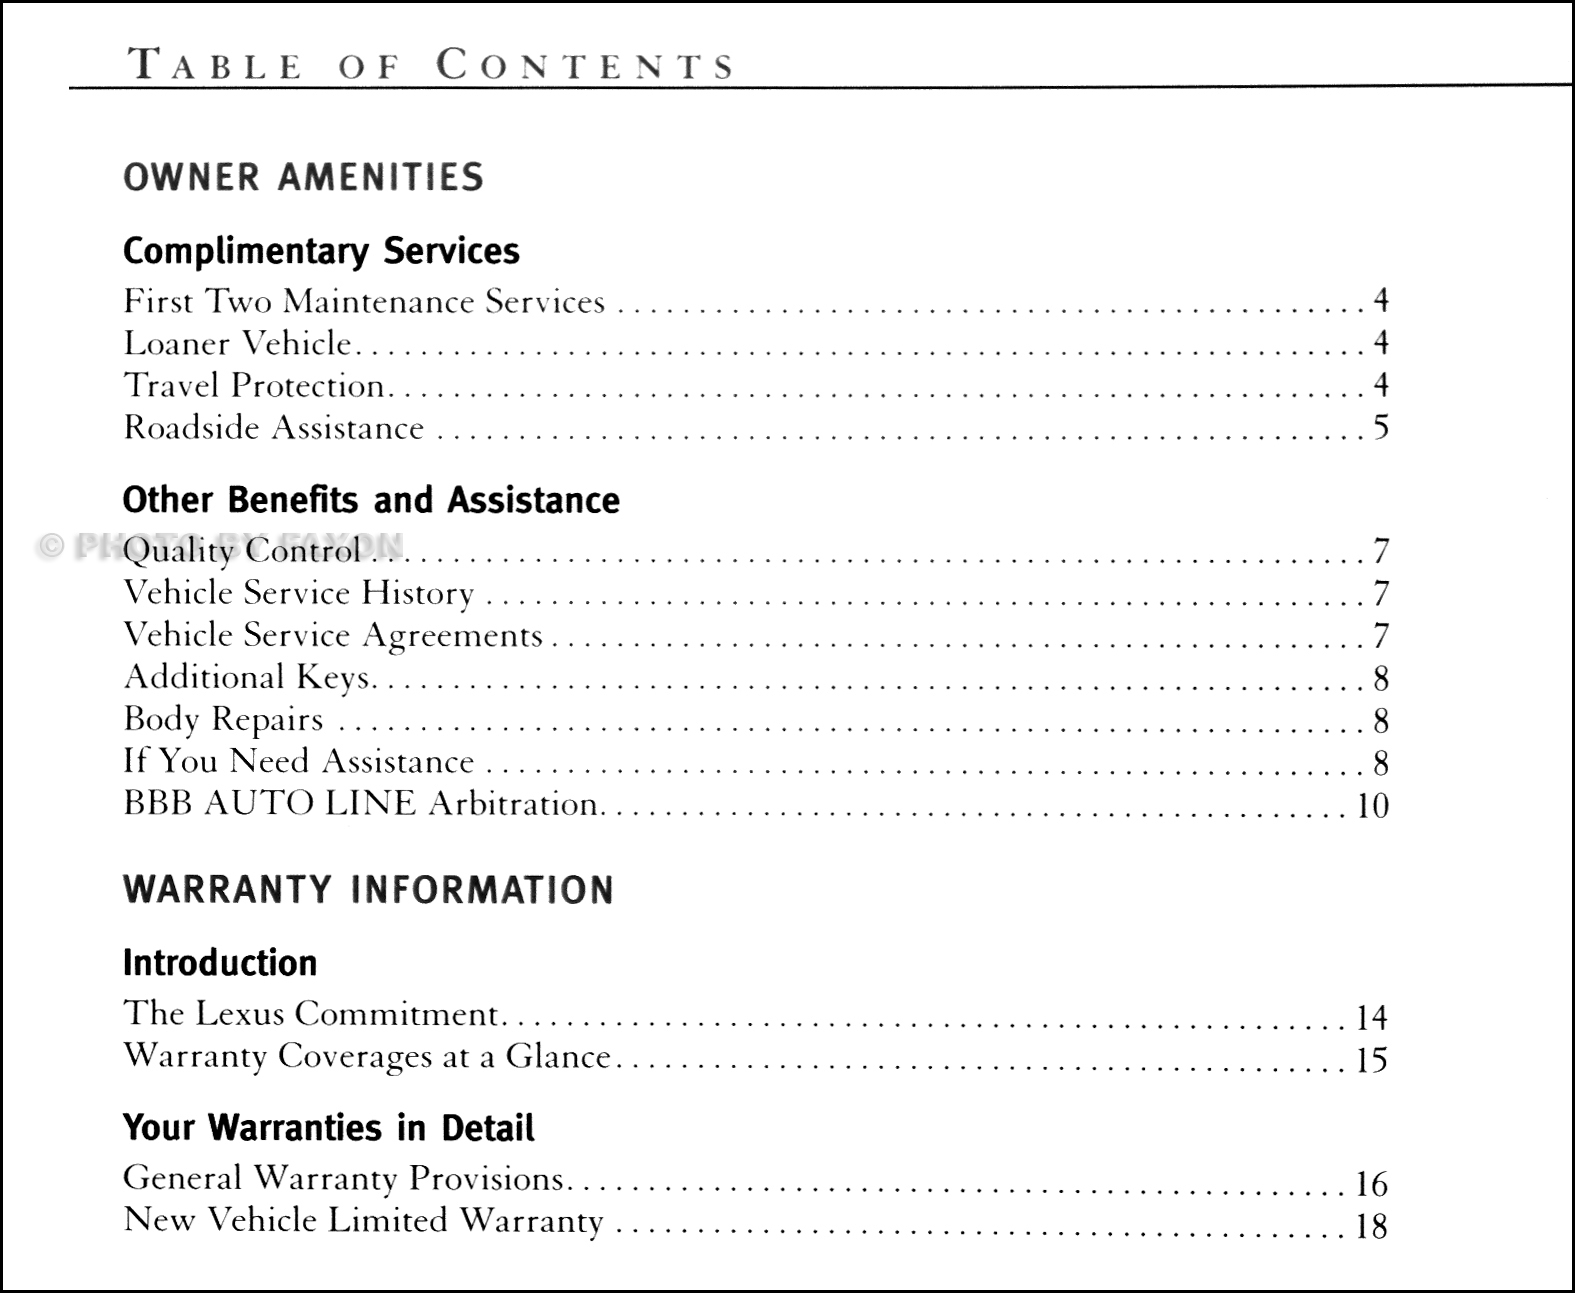 2001 Lexus Owners Manual Supplement Original · Table of Contents Page 1 ·  Table of Contents Page 2 · Table of Contents